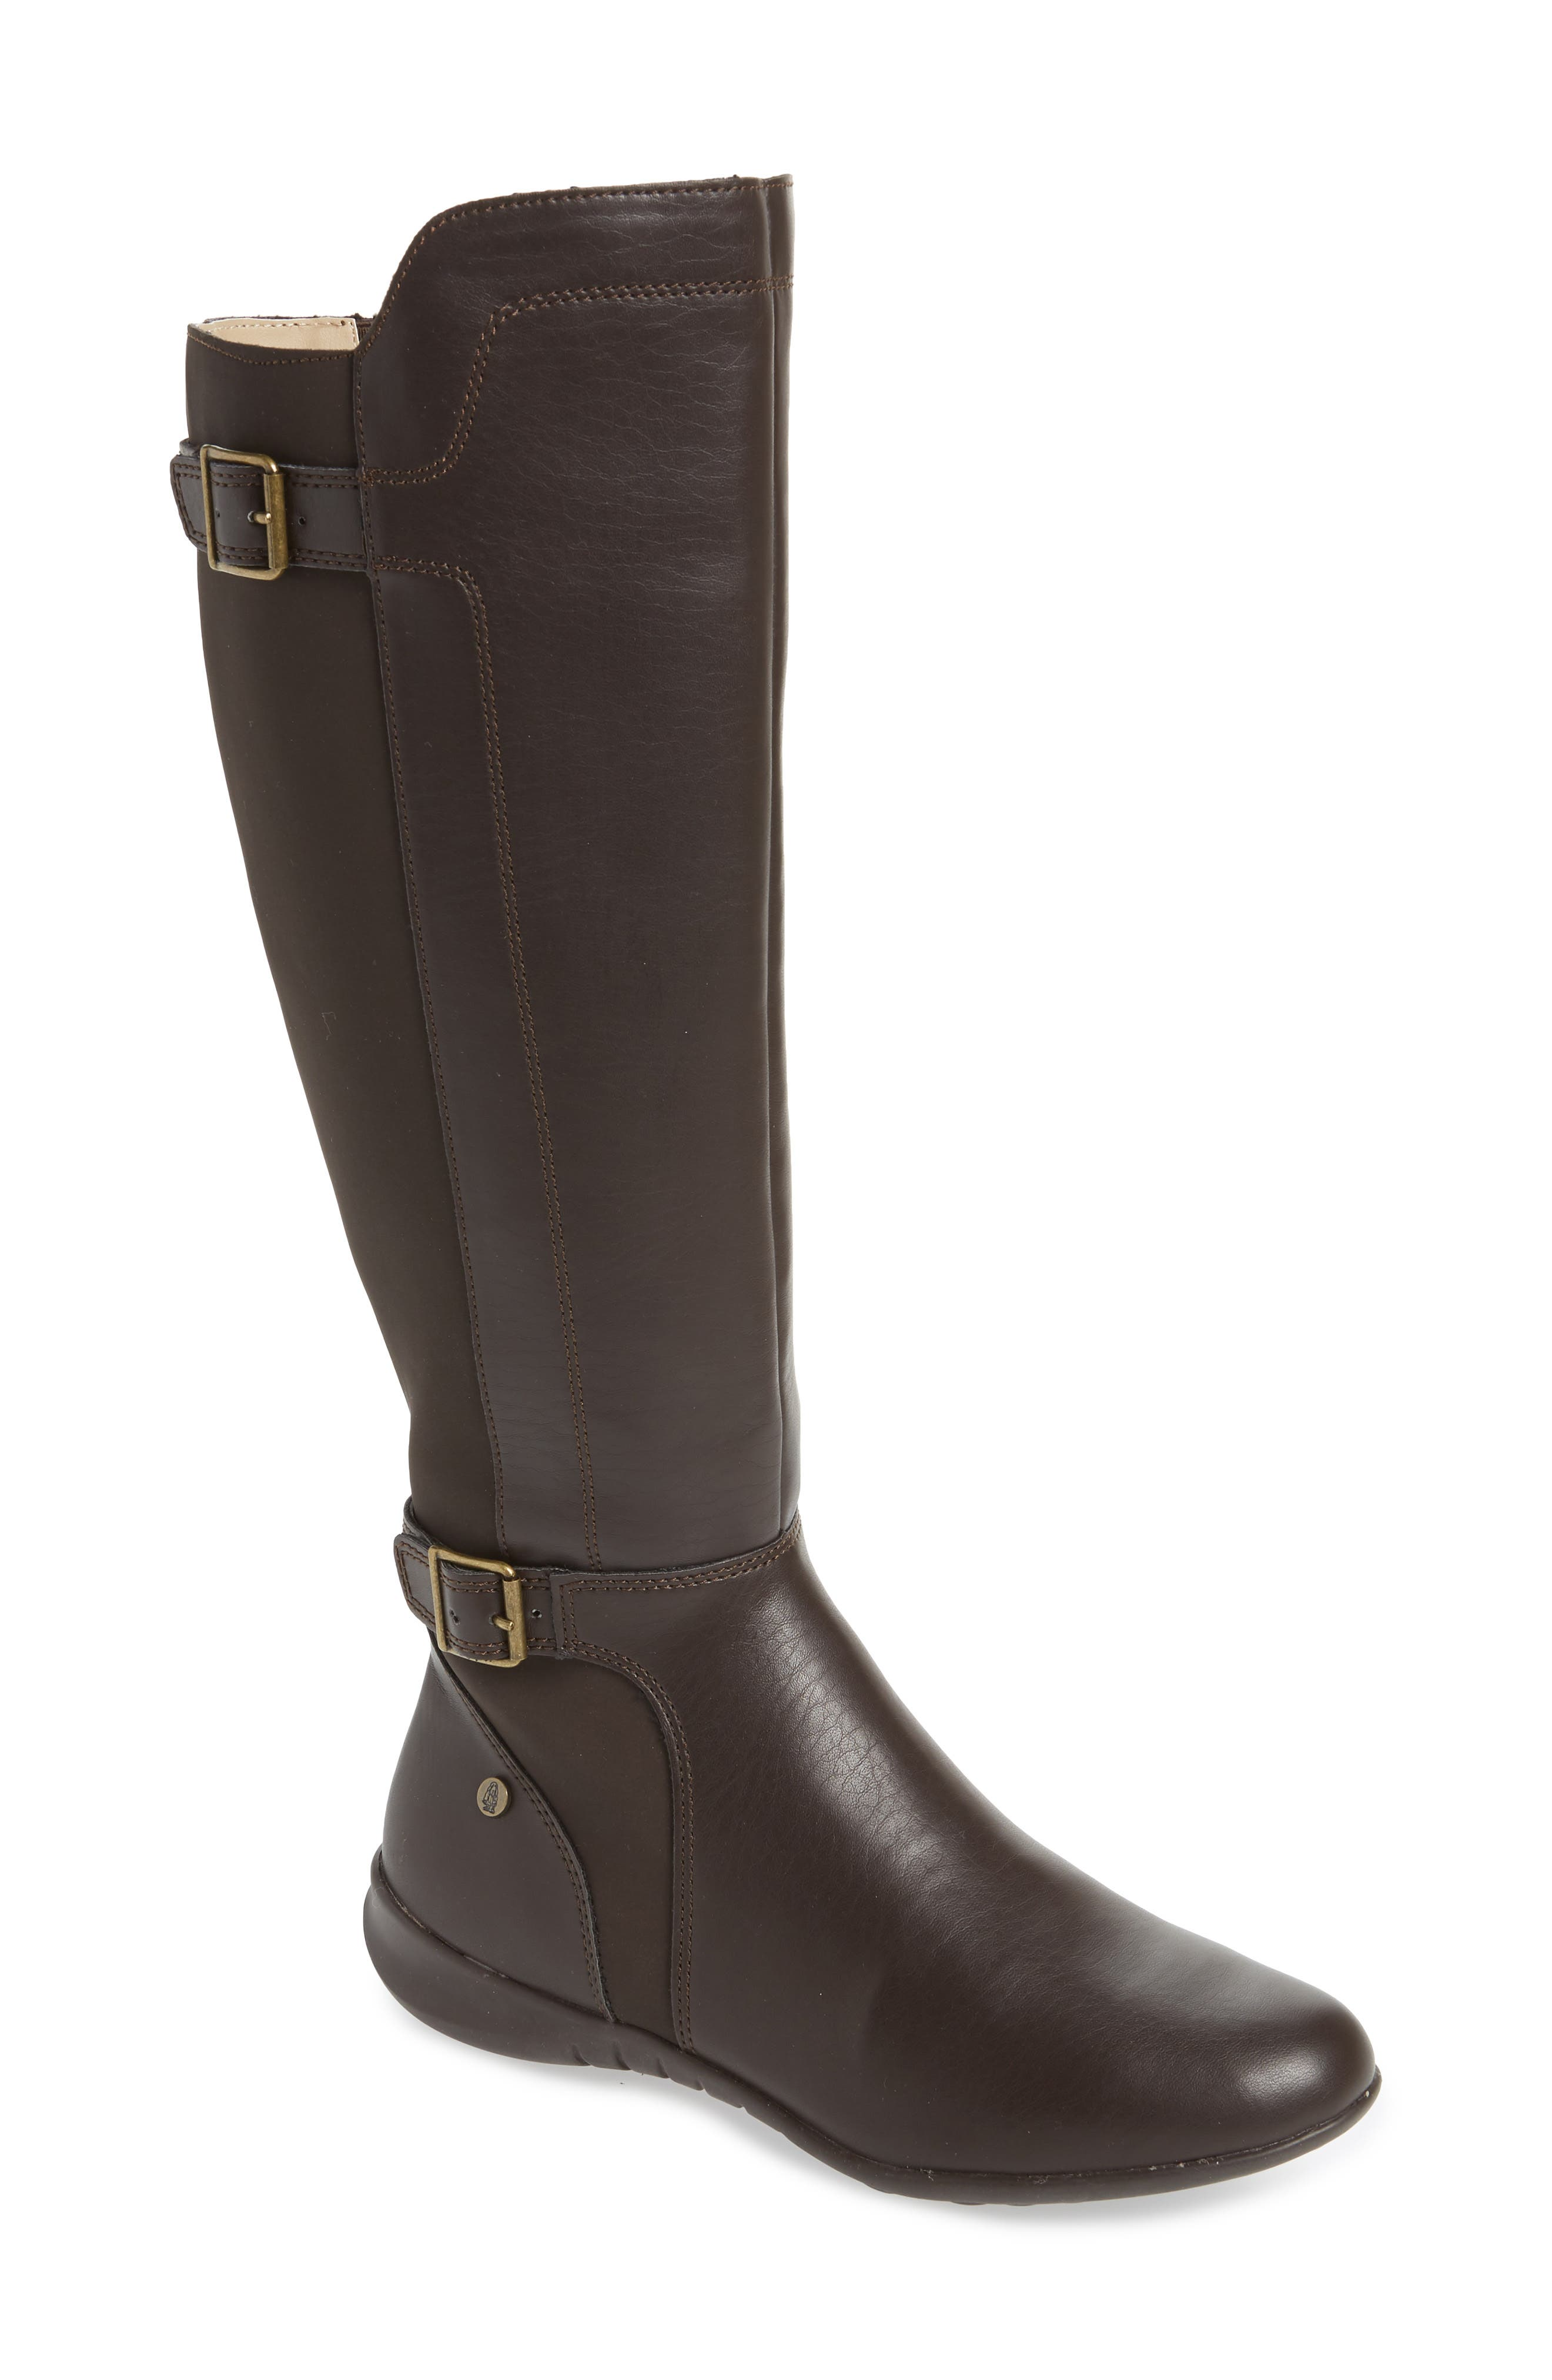 Bria Knee High Boot,                             Main thumbnail 1, color,                             DARK BROWN FAUX LEATHER